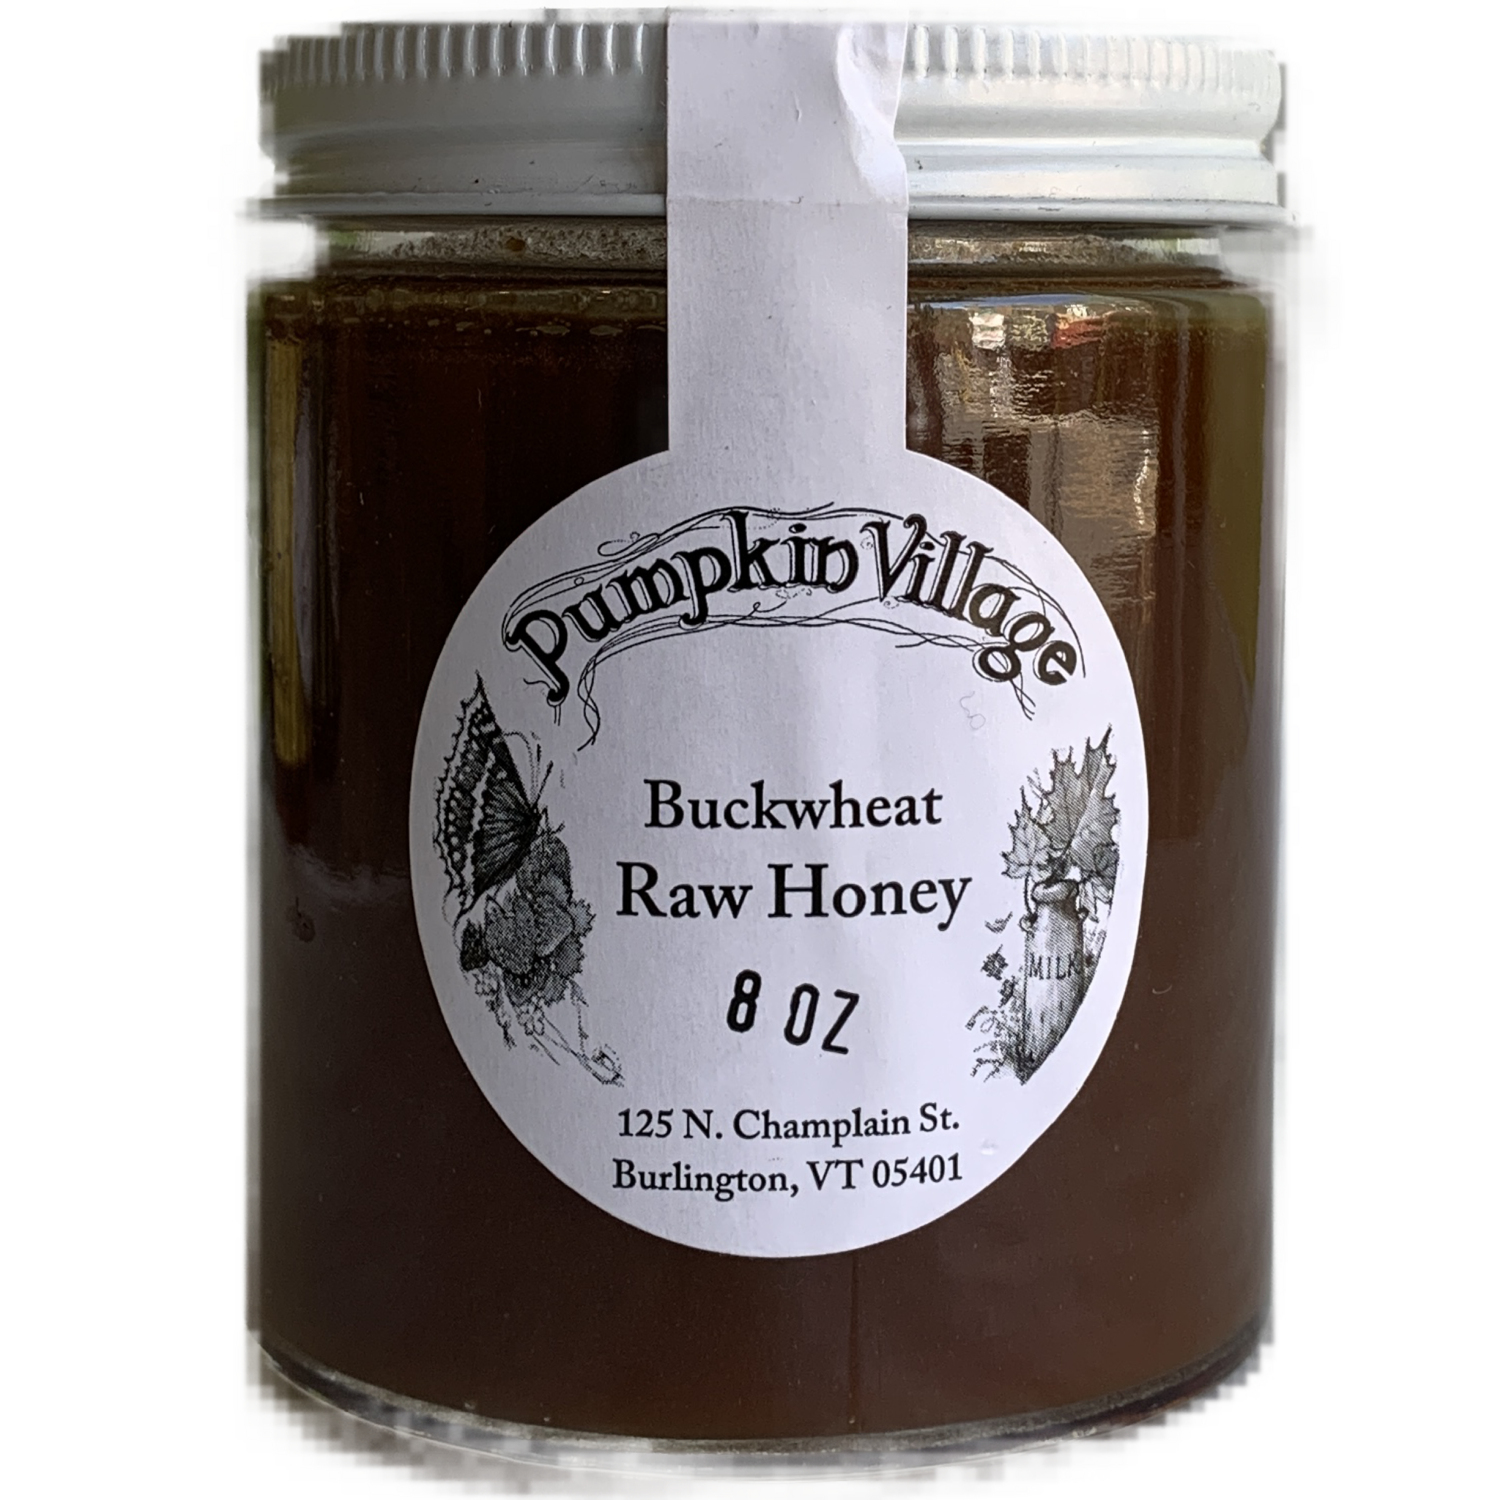 BUCKWHEAT Honey Pumpkin Village 8oz